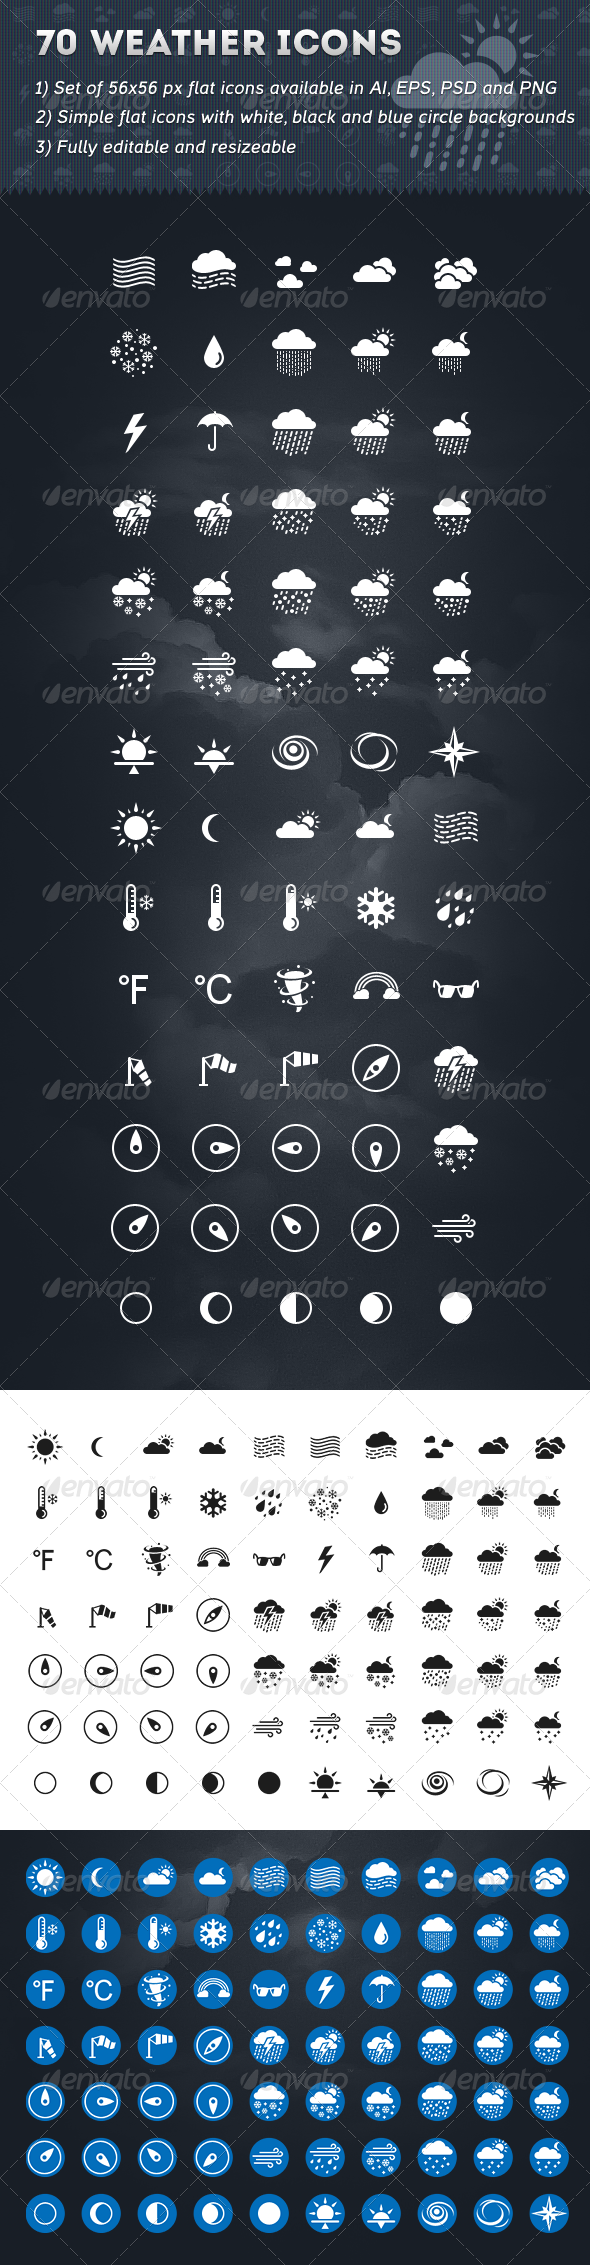 GraphicRiver 70 Weather Icons 6509981